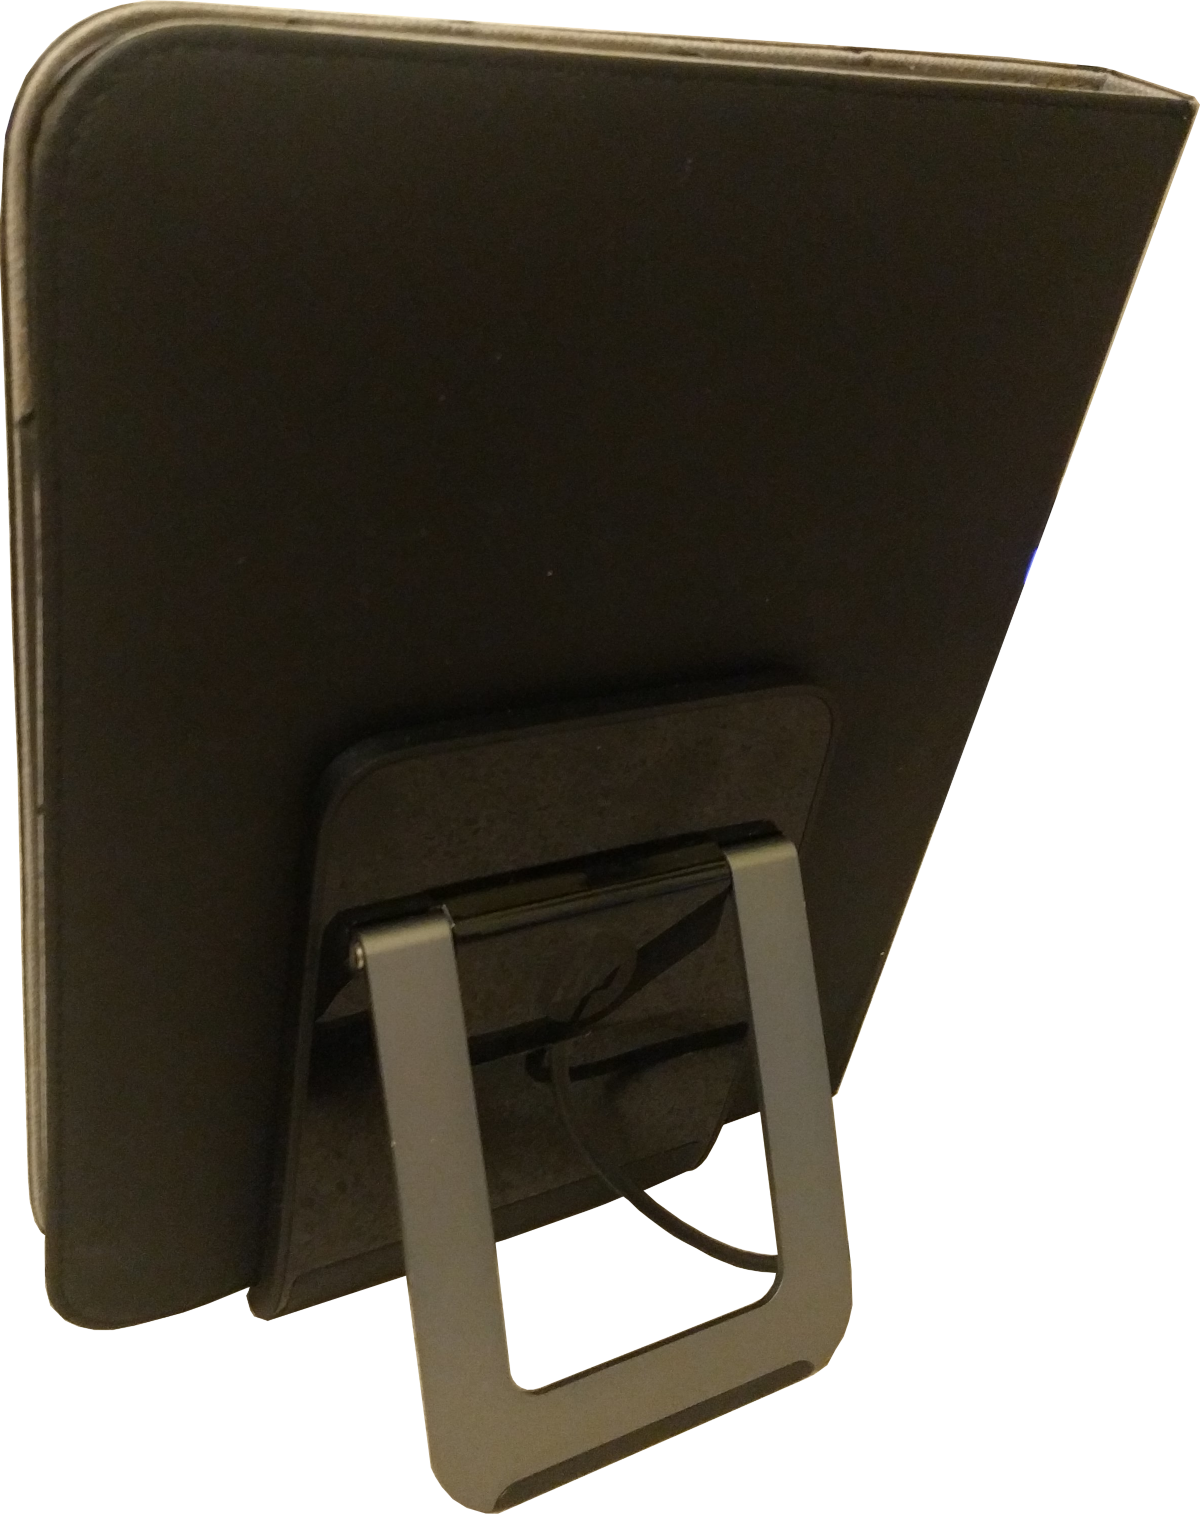 HP_TouchPad-17-Touchstone Charger.png